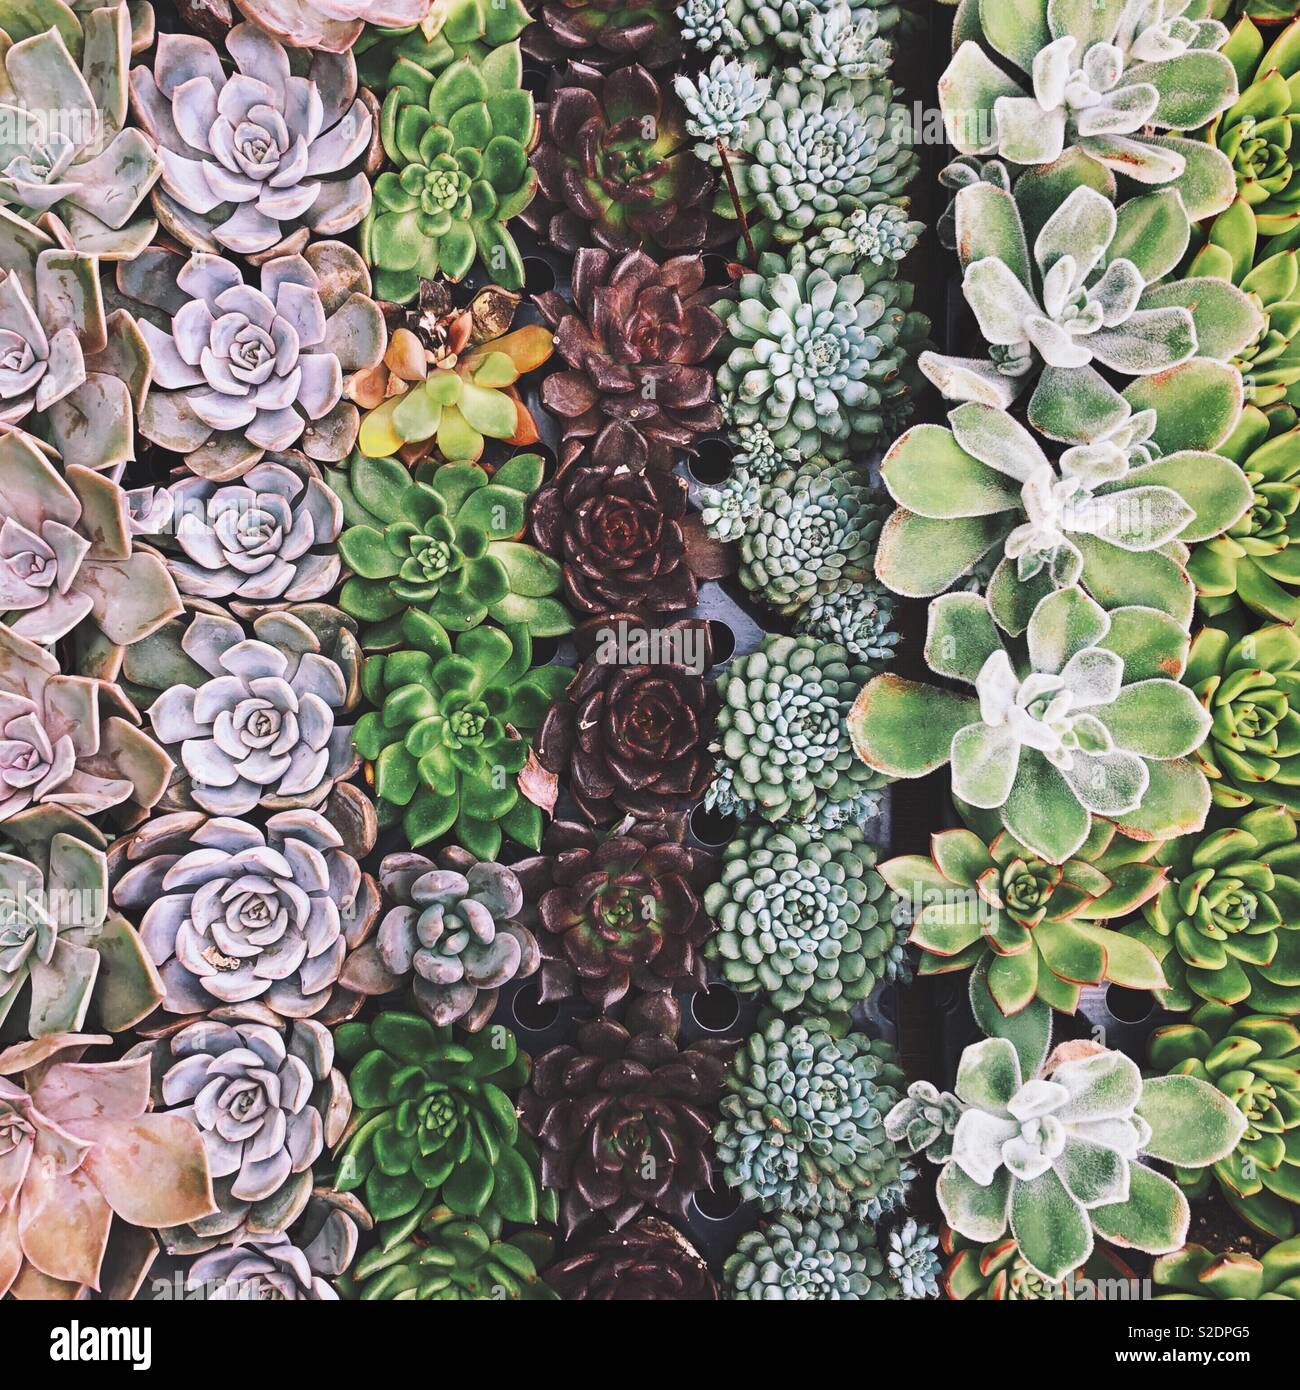 Succulents in Rows Stock Photo